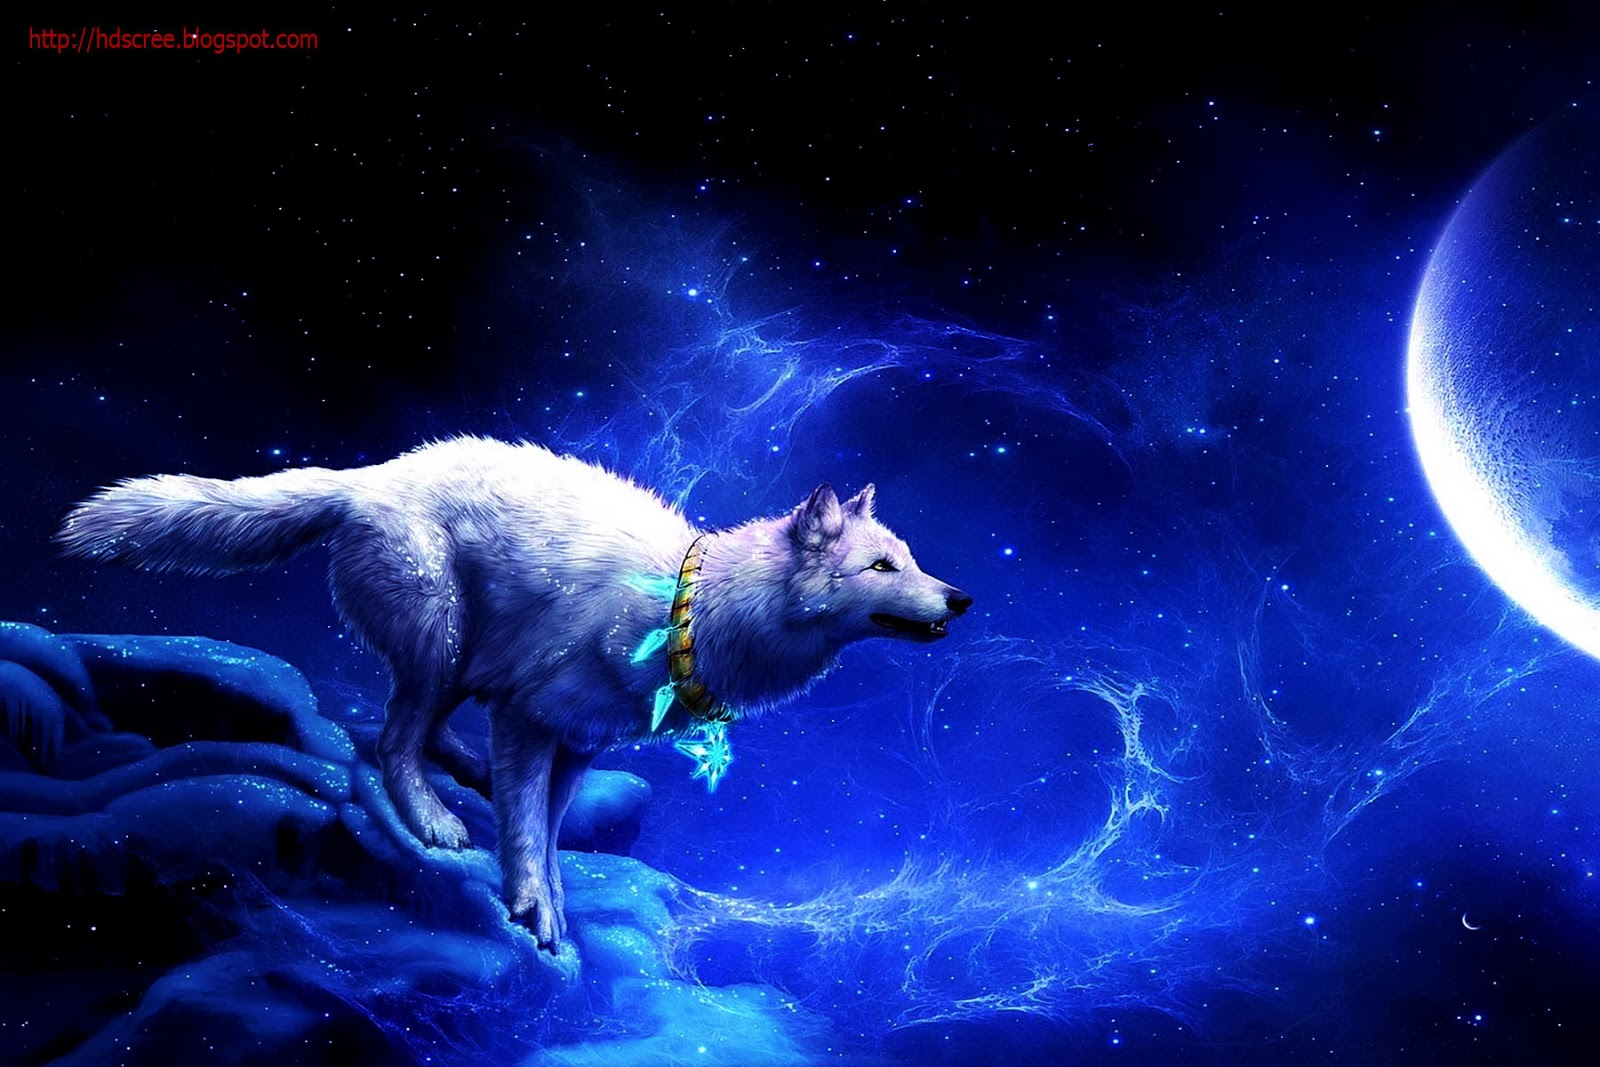 Hd Animal Wallpapers Hd Music Wallpapers: January Wallpapers And Screensavers